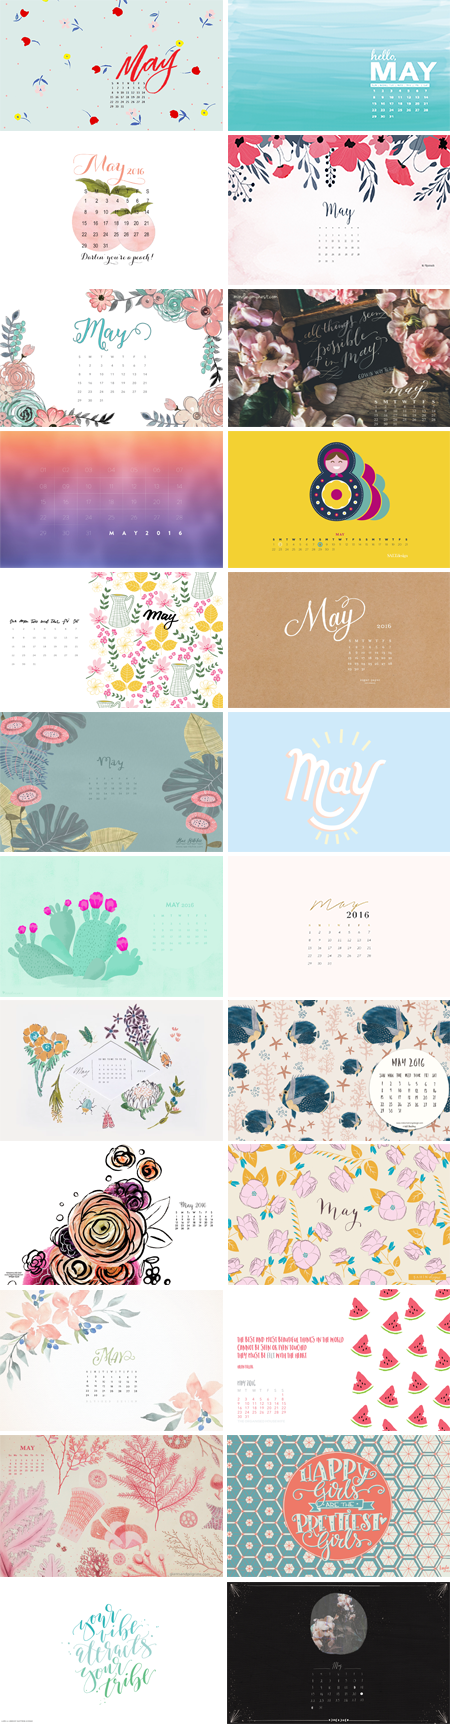 // May 2016 Wallpapers Round-up